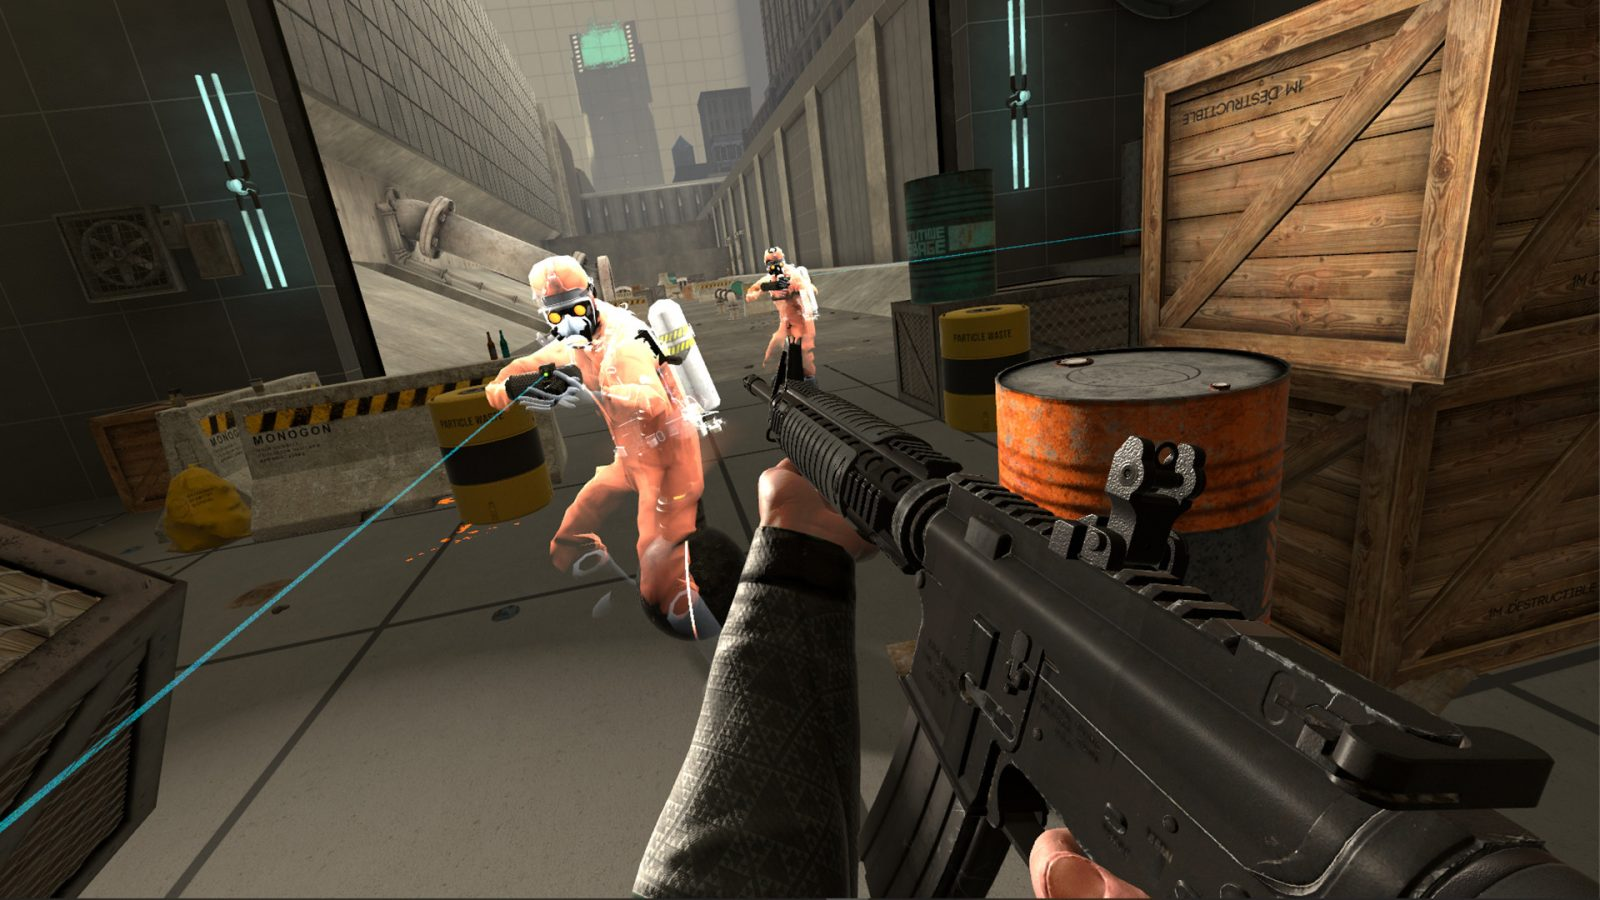 Half-Life: Alyx is still a ways off, but Boneworks is another VR title to watch